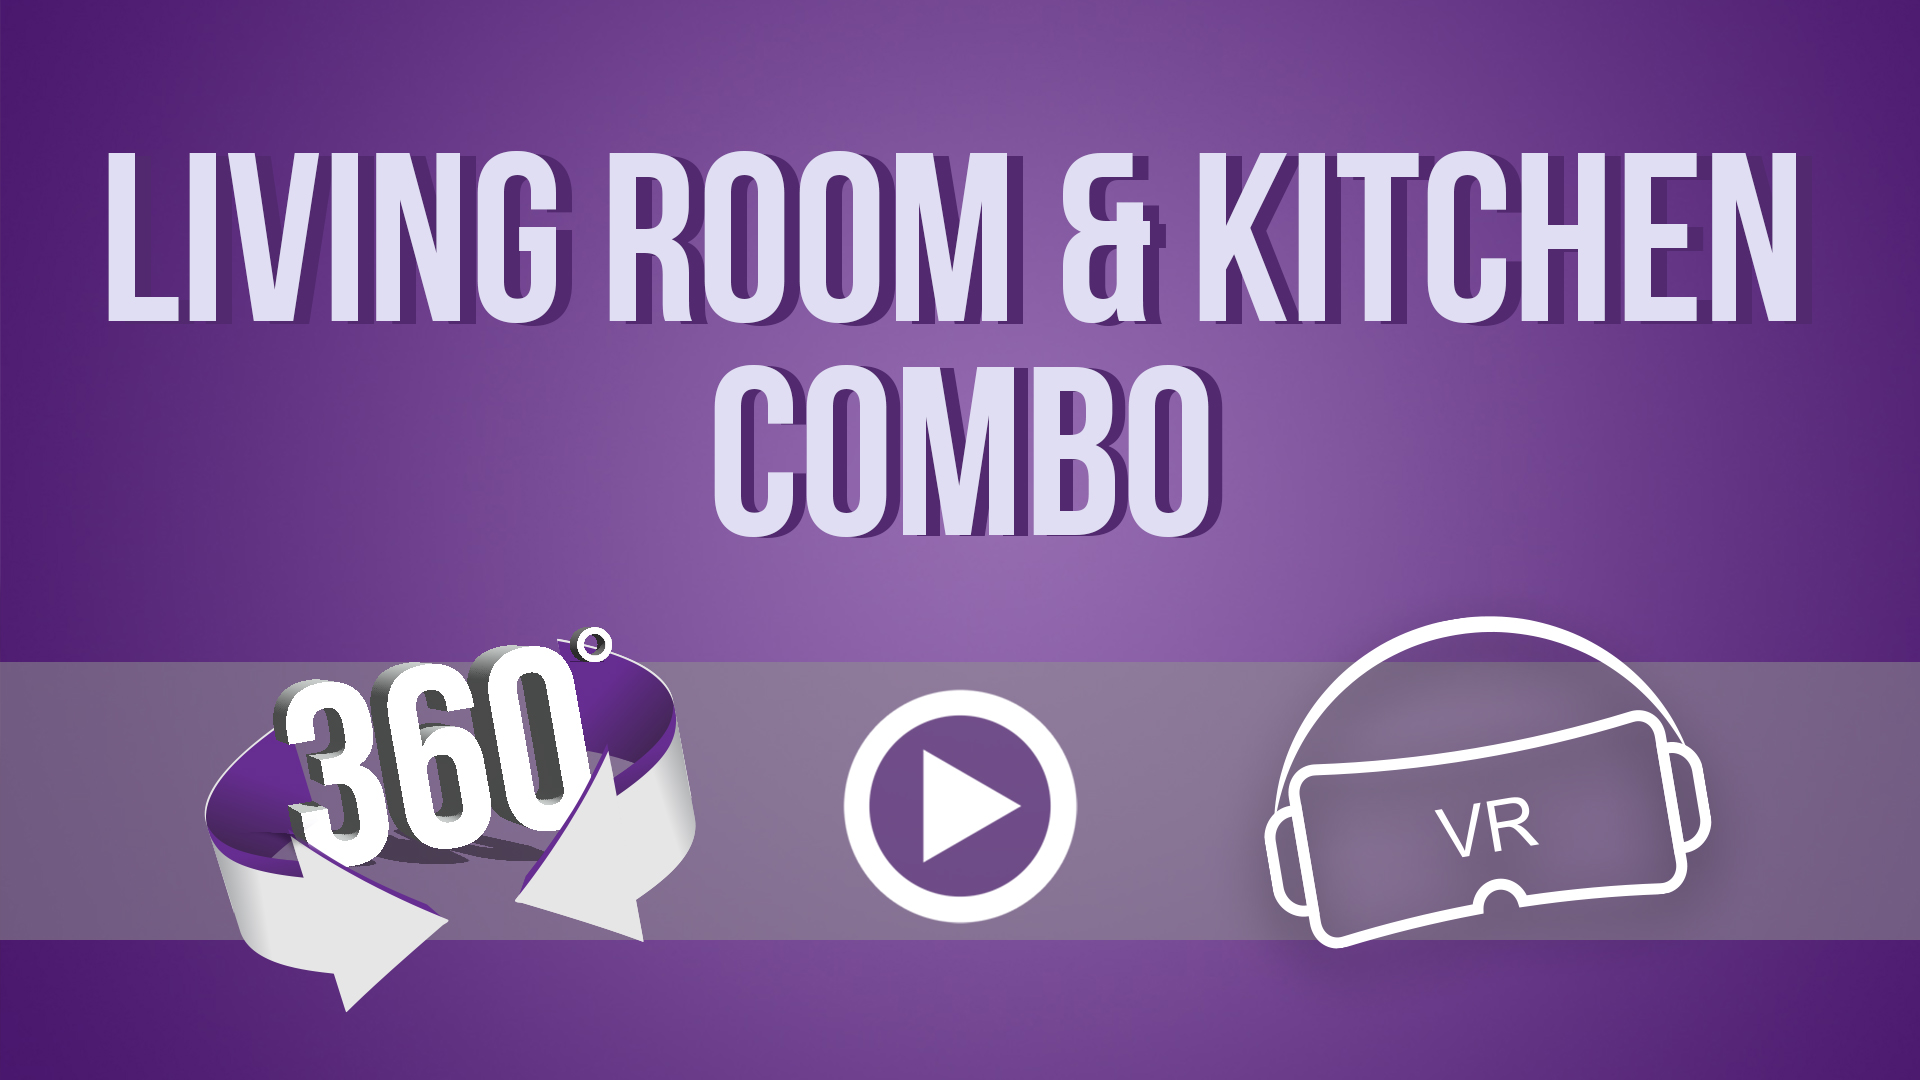 Living Room Kitchen Combo thumb